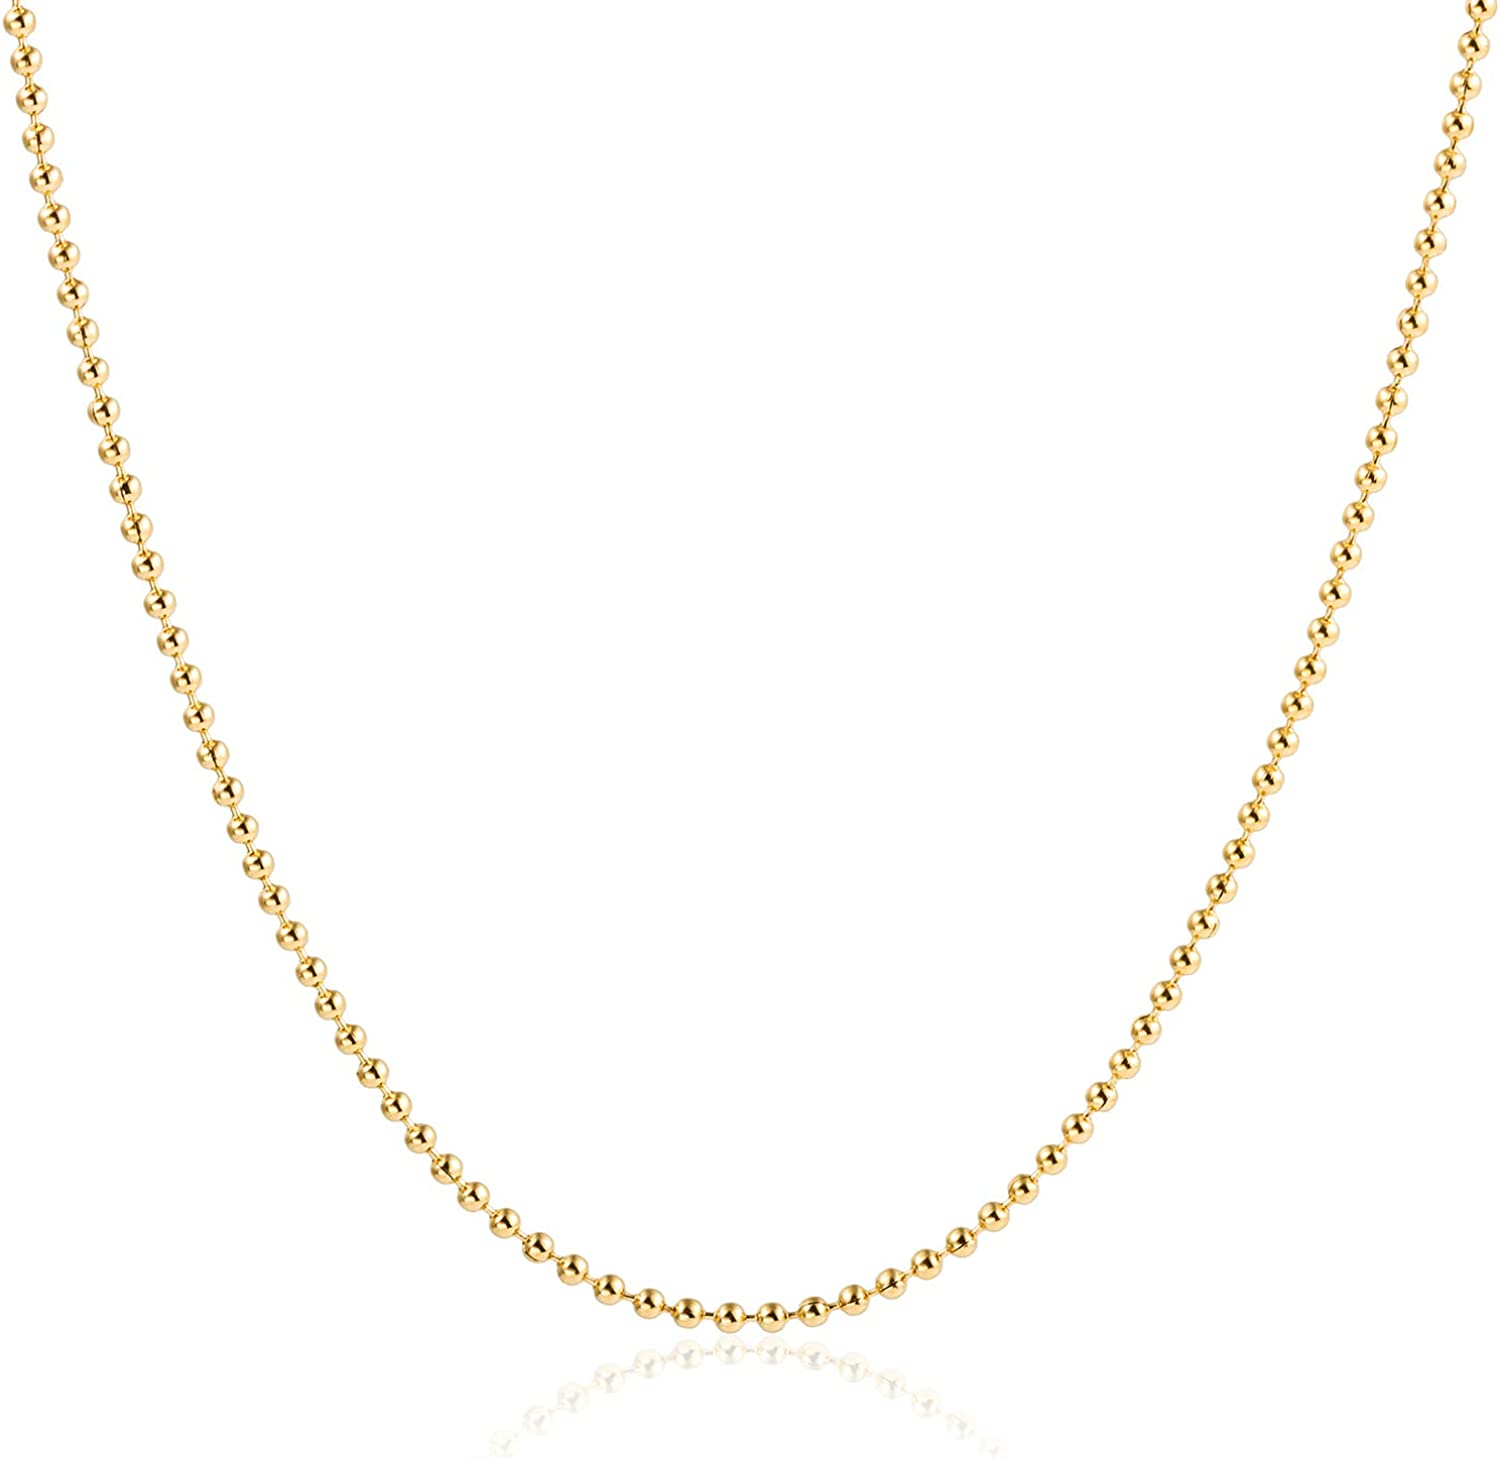 HAWSON 18K Gold Rope Chain Necklaces, 1.5-2mm Stainless Steel Link Chain, Diamond-Cut Braided Twist Link, Stacking Necklaces for Women, Tiny Girls Collars, Strand Choker 16